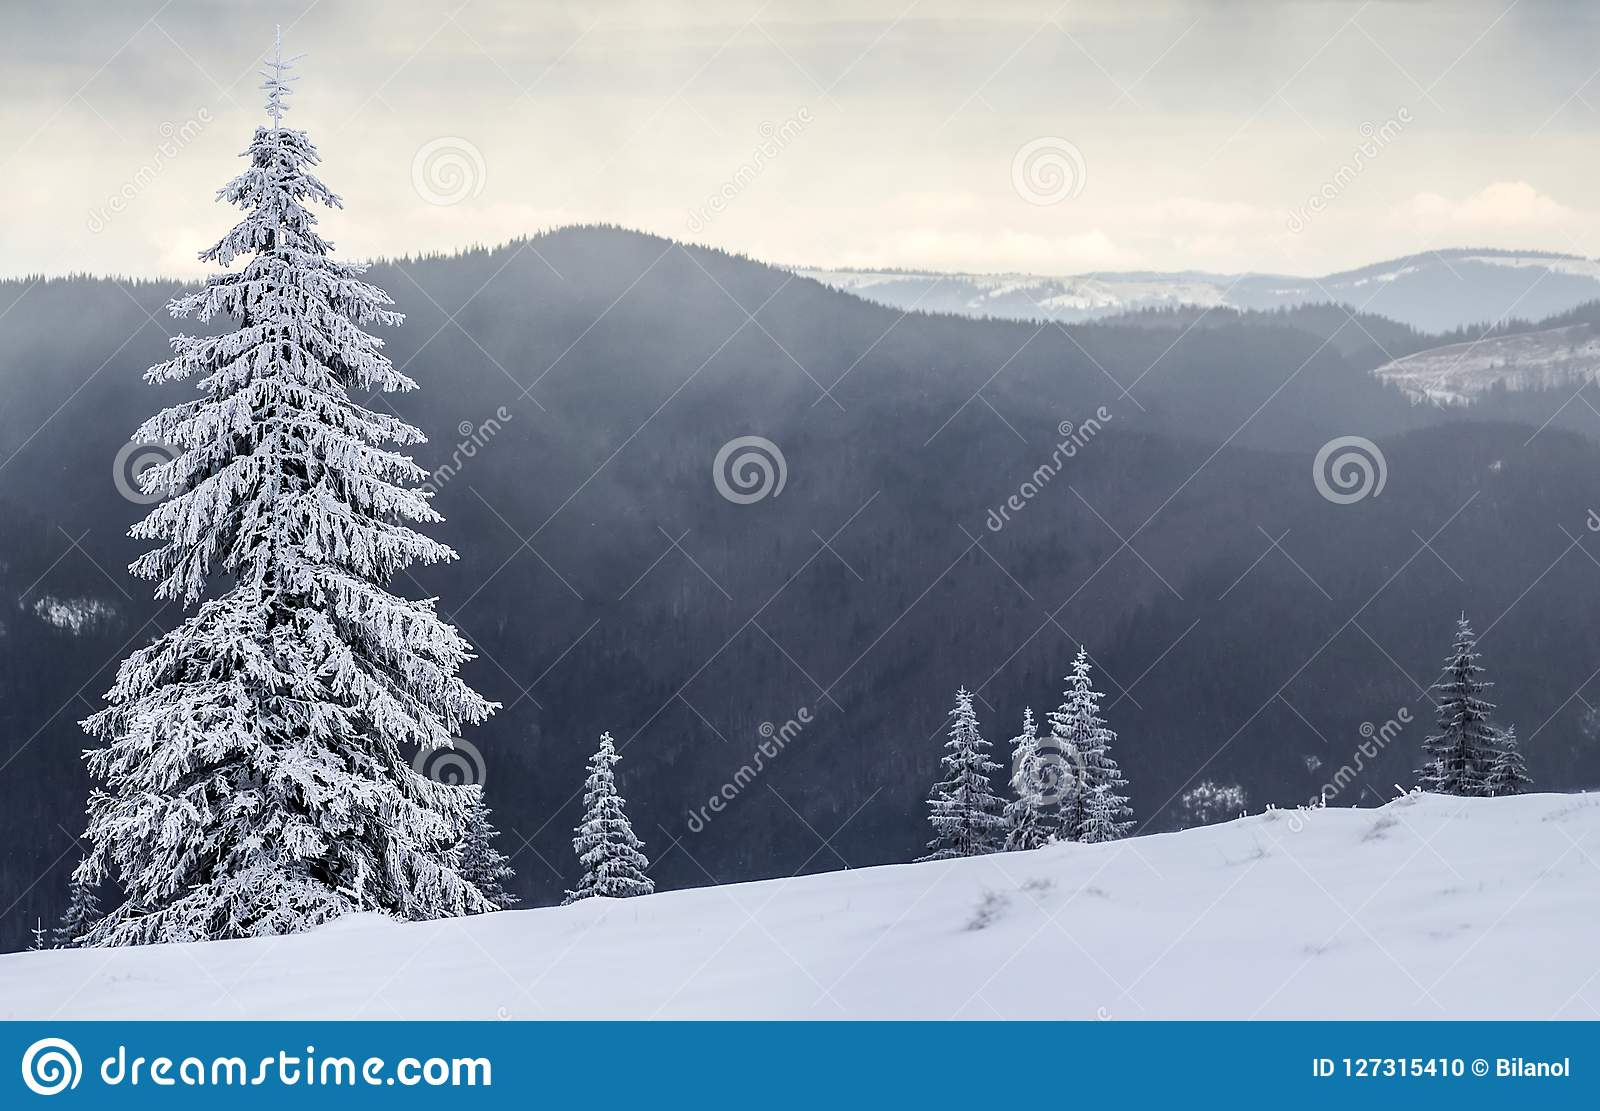 Winter mountain landscape with snow covered pine trees